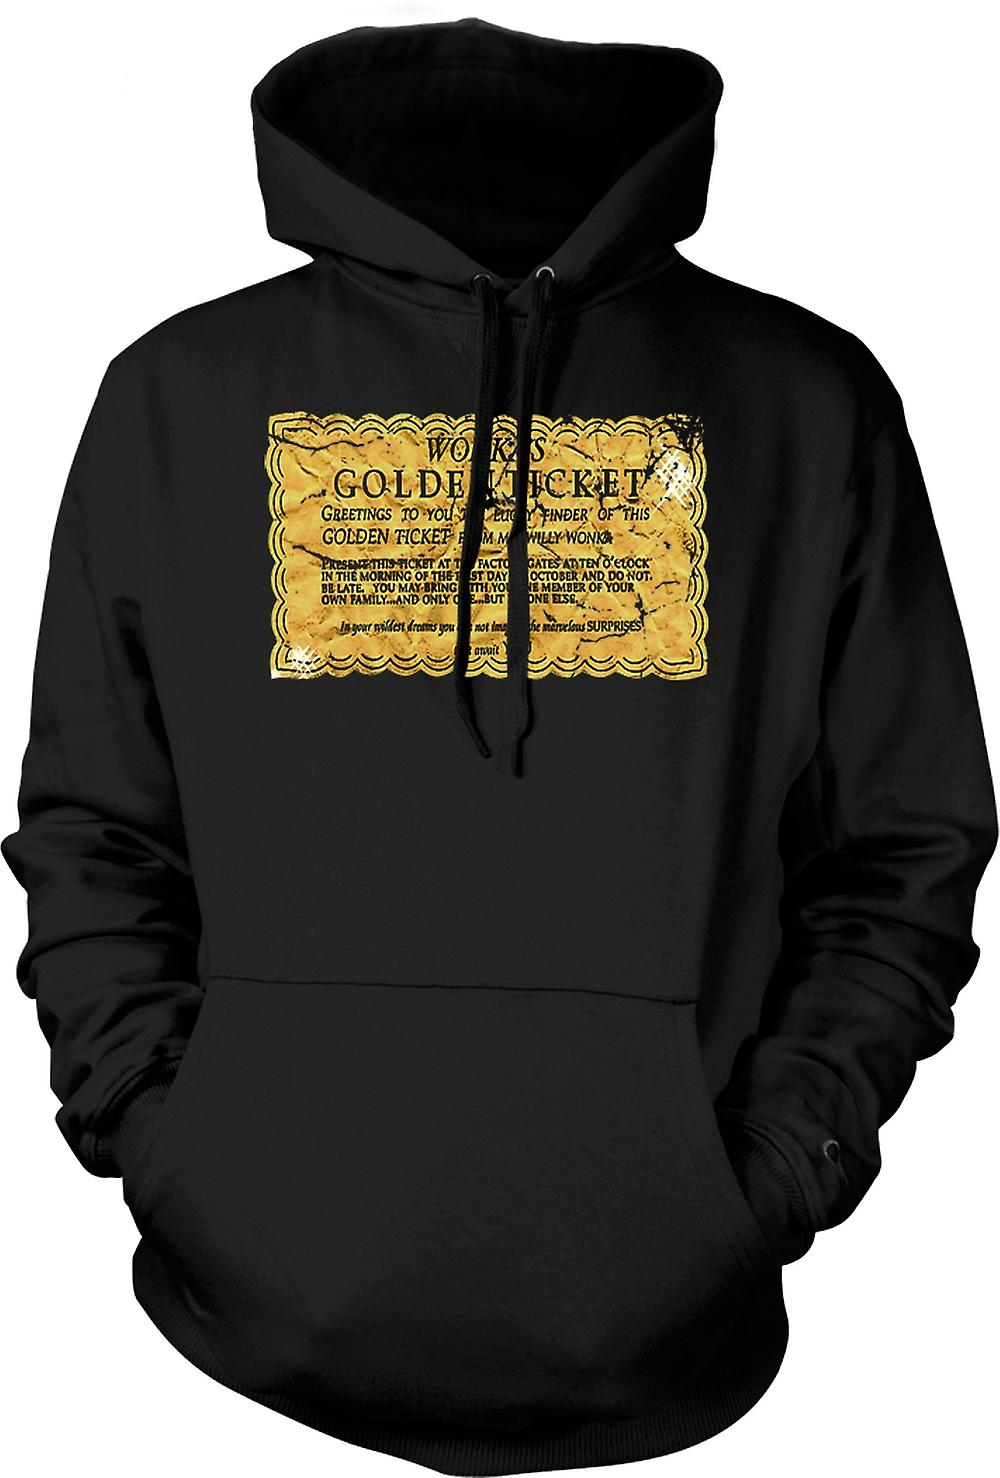 Enfant Sweat Capuche - Willy Wonka Golden Ticket - Drôle